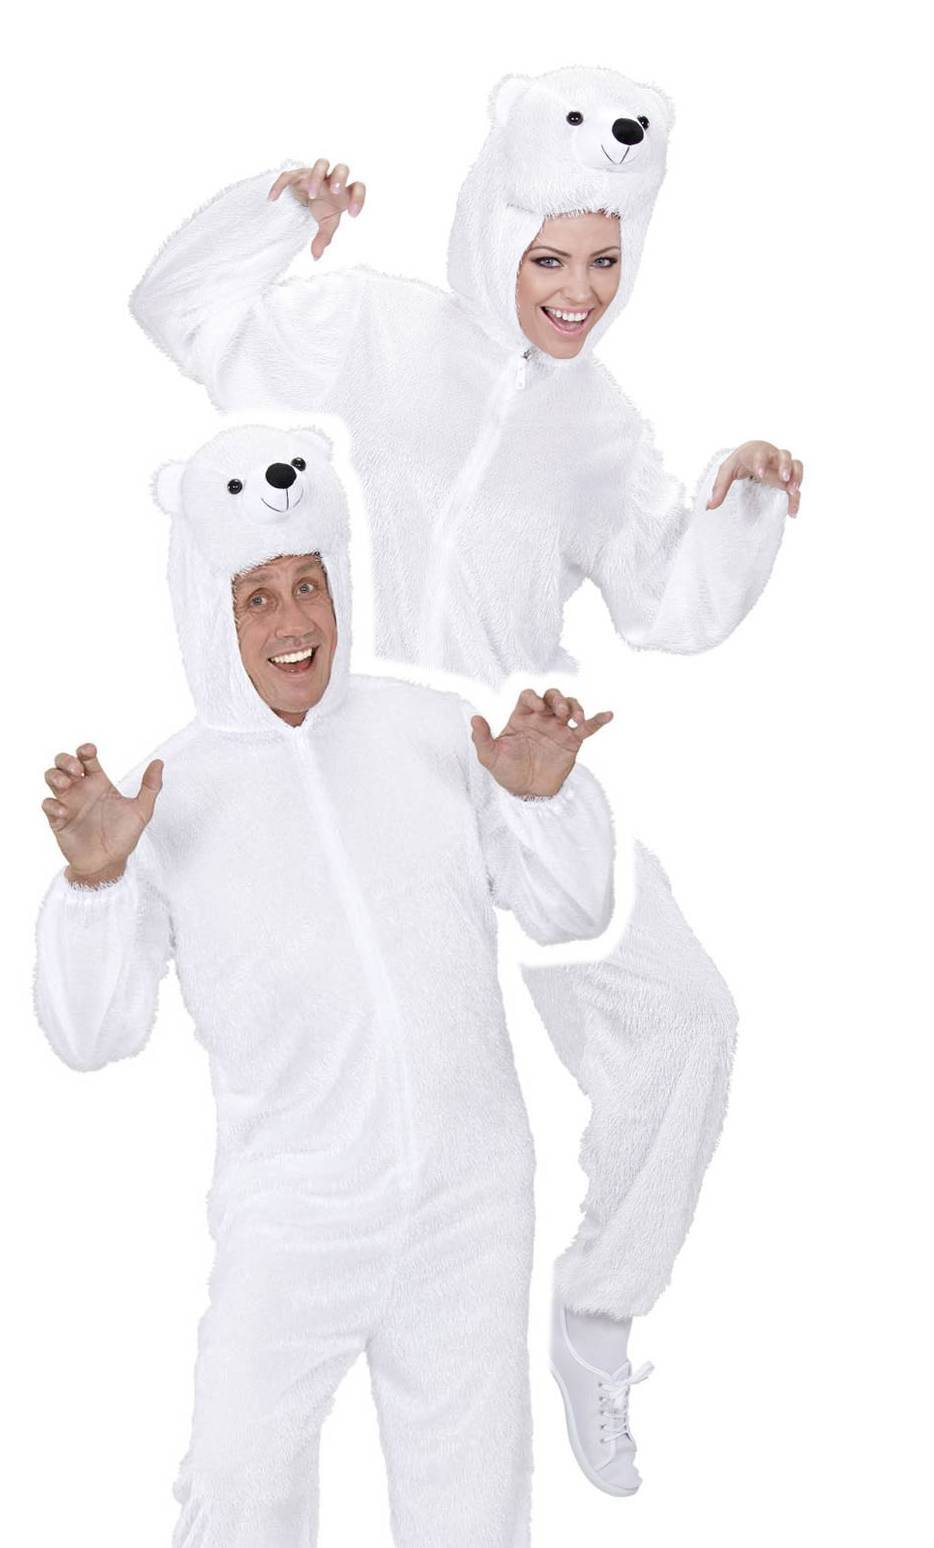 Costume d'ours blanc en grande taille